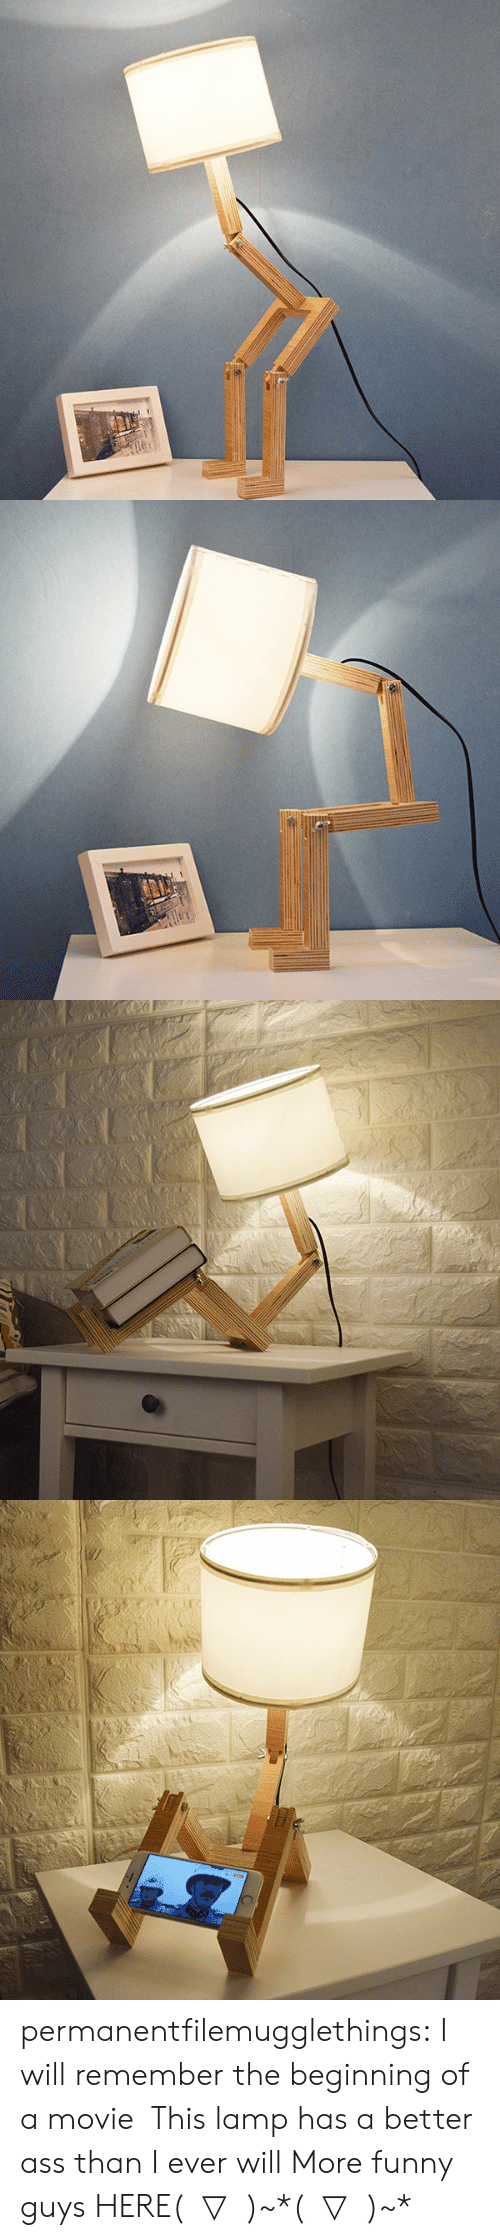 More Funny: 130C permanentfilemugglethings: I will remember the beginning of a movie,This lamp has a better ass than I ever will More funny guys HERE( ̄▽ ̄)~*( ̄▽ ̄)~*